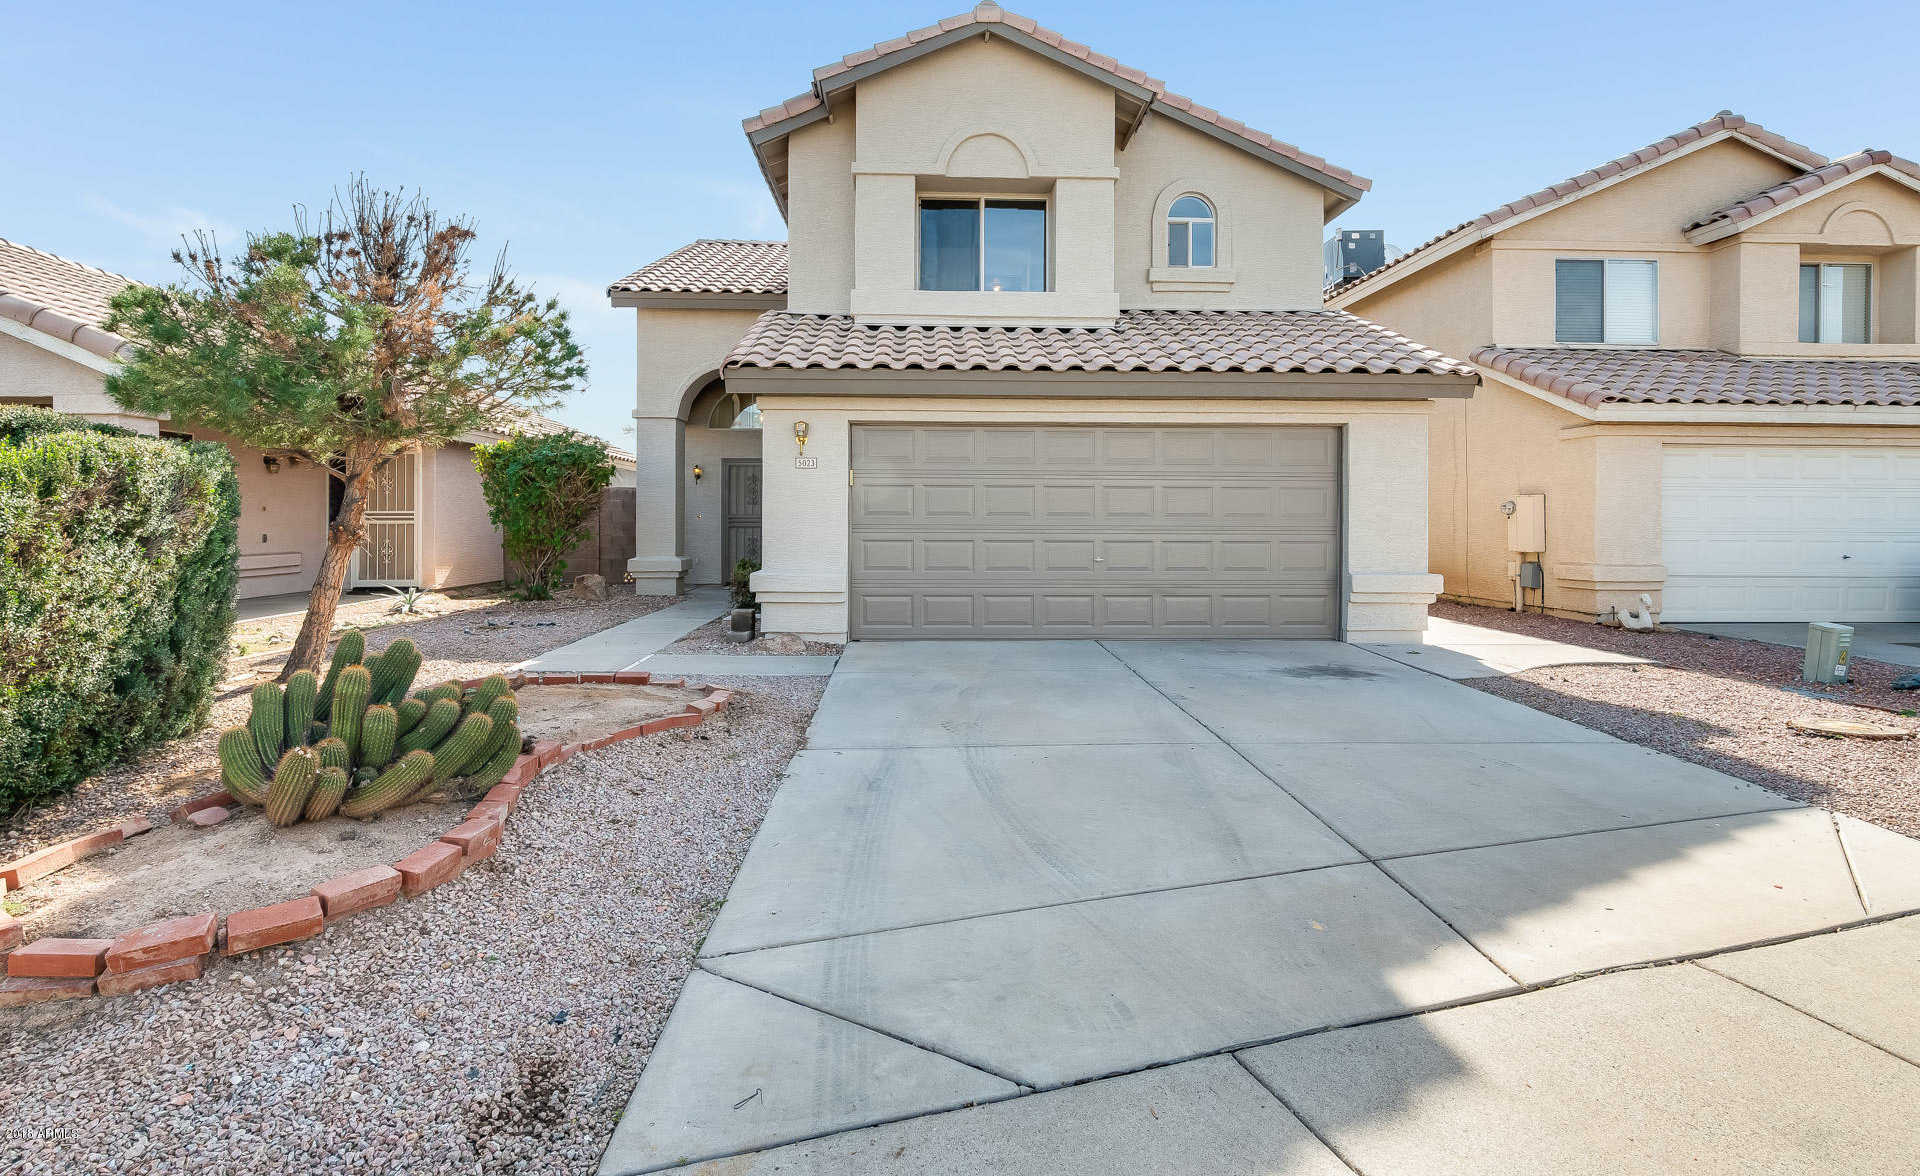 $250,900 - 3Br/3Ba - Home for Sale in Crystal Creek, Glendale